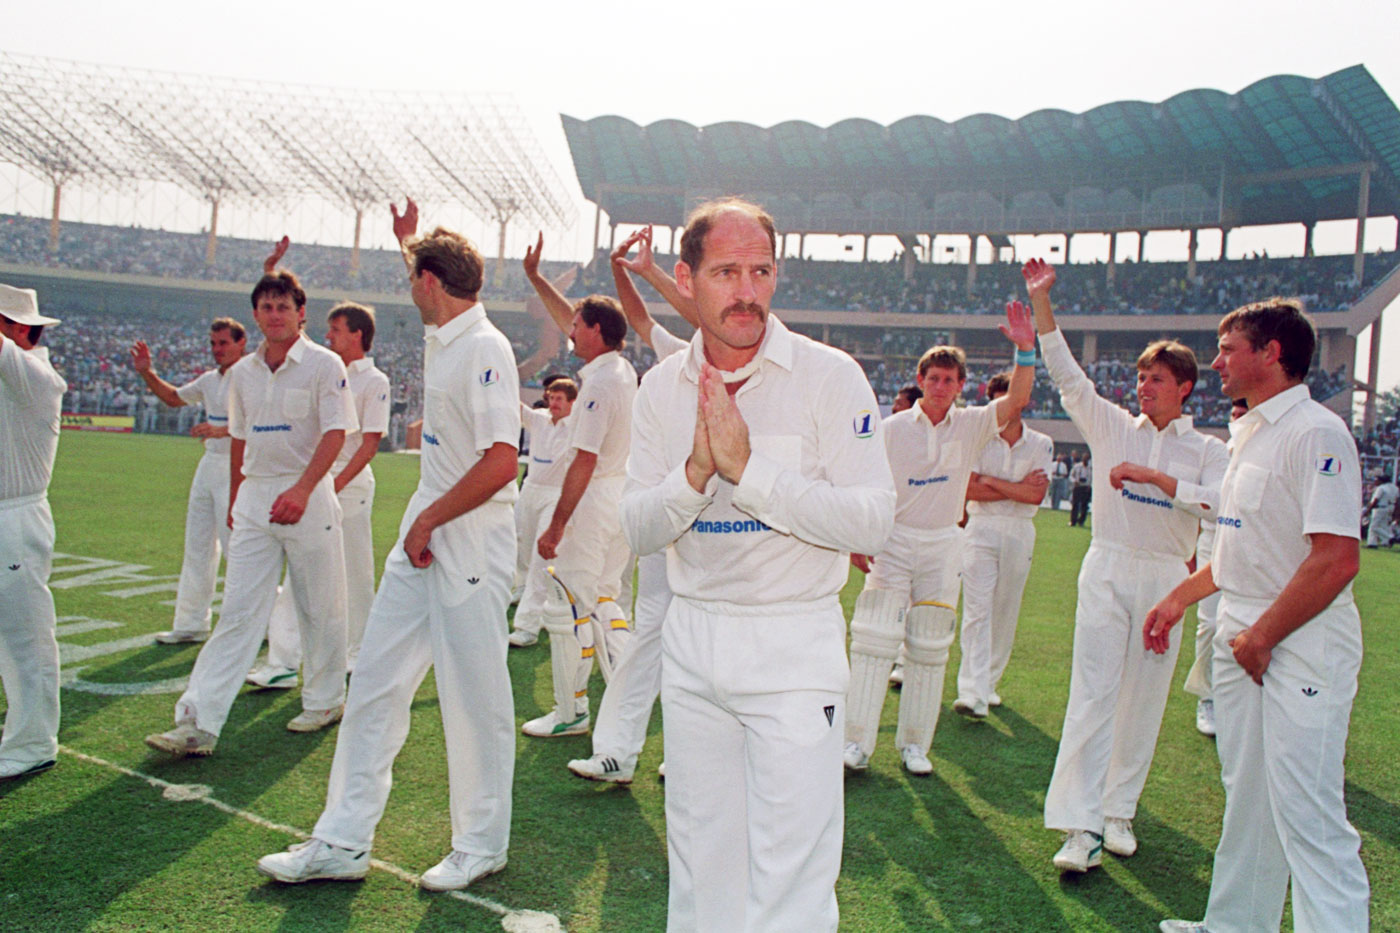 South Africa's Clive Rice leads his team back into international cricket, India v South Africa, first ODI, Calcutta, 10 November, 1991